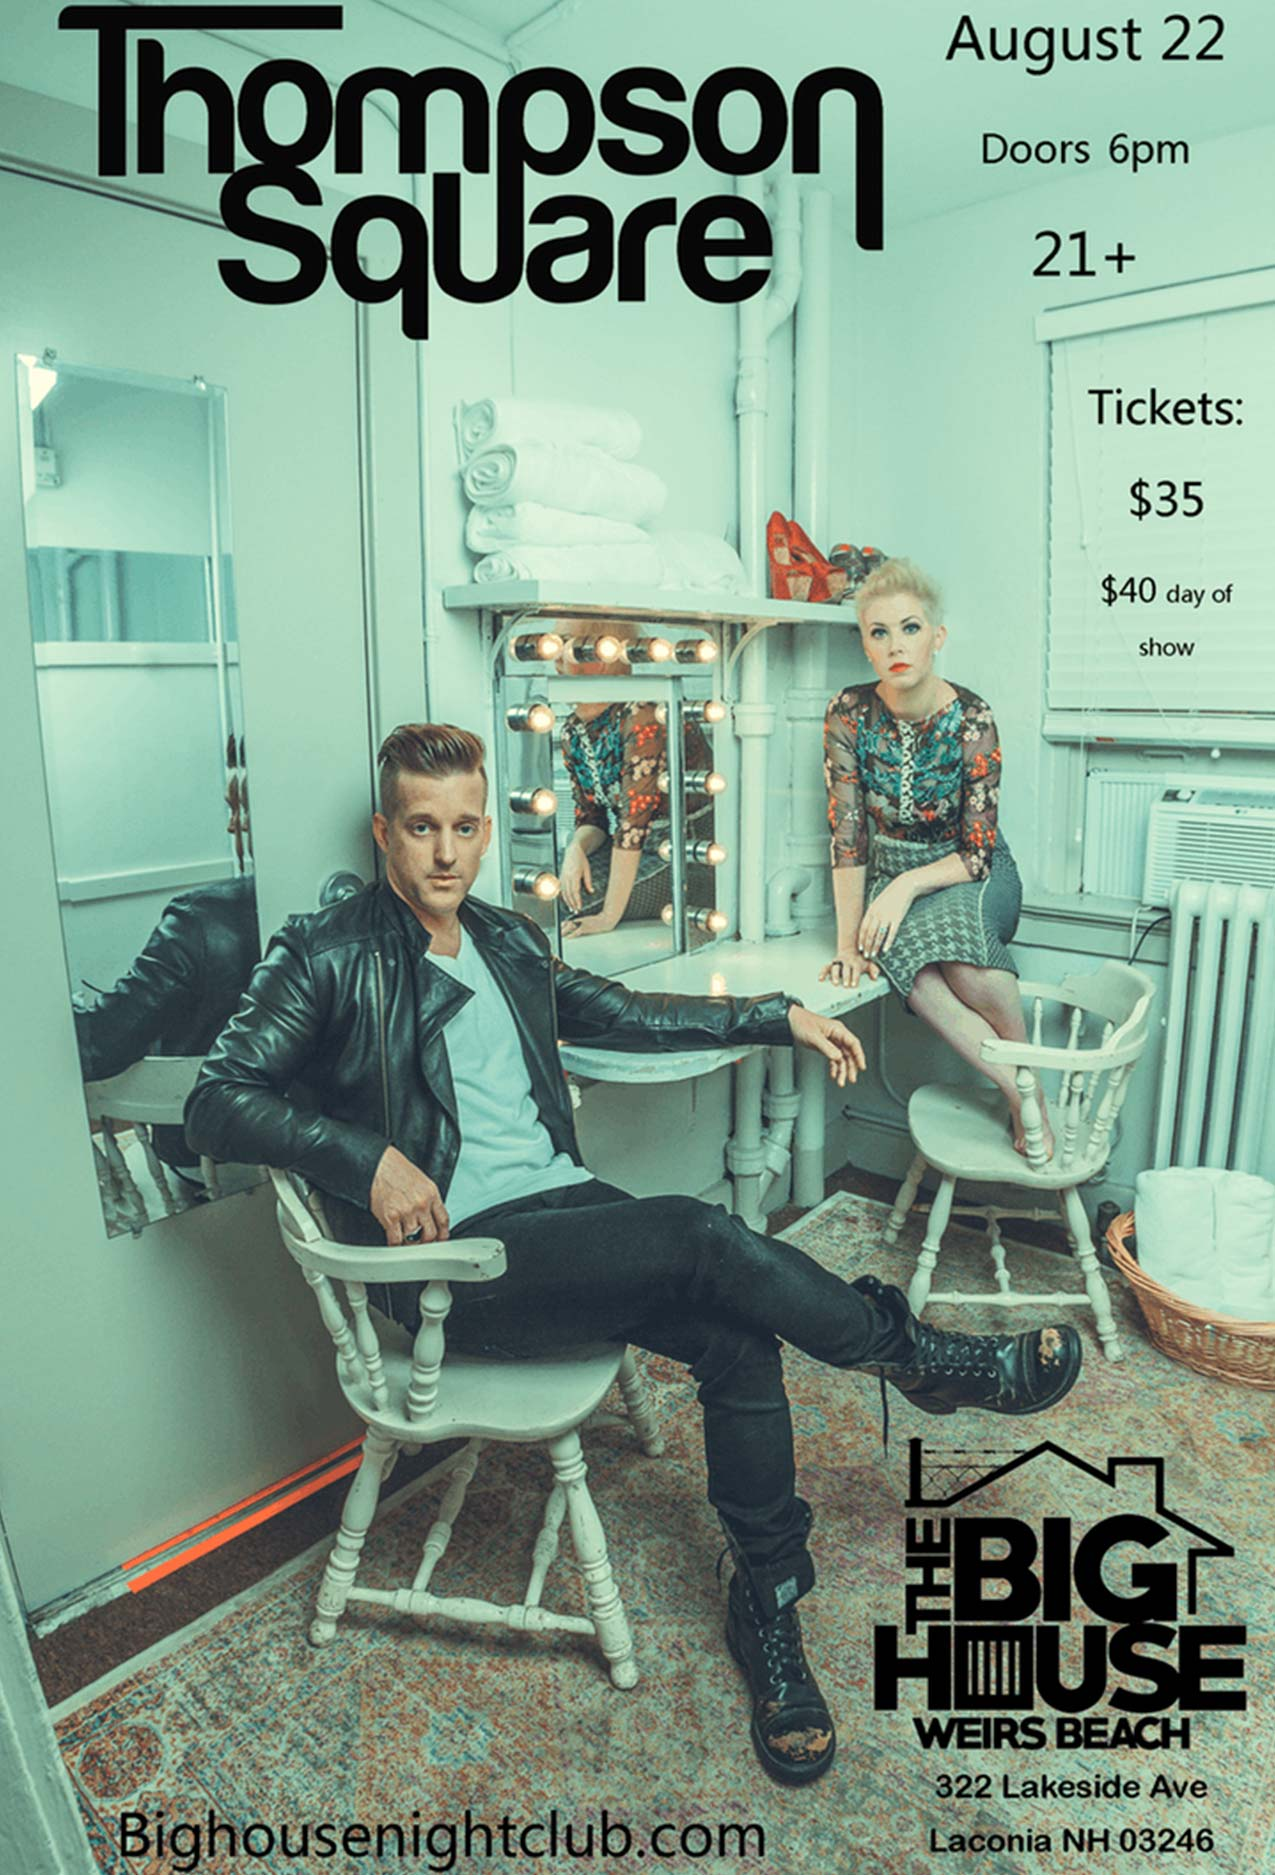 Thompson Square Flyer